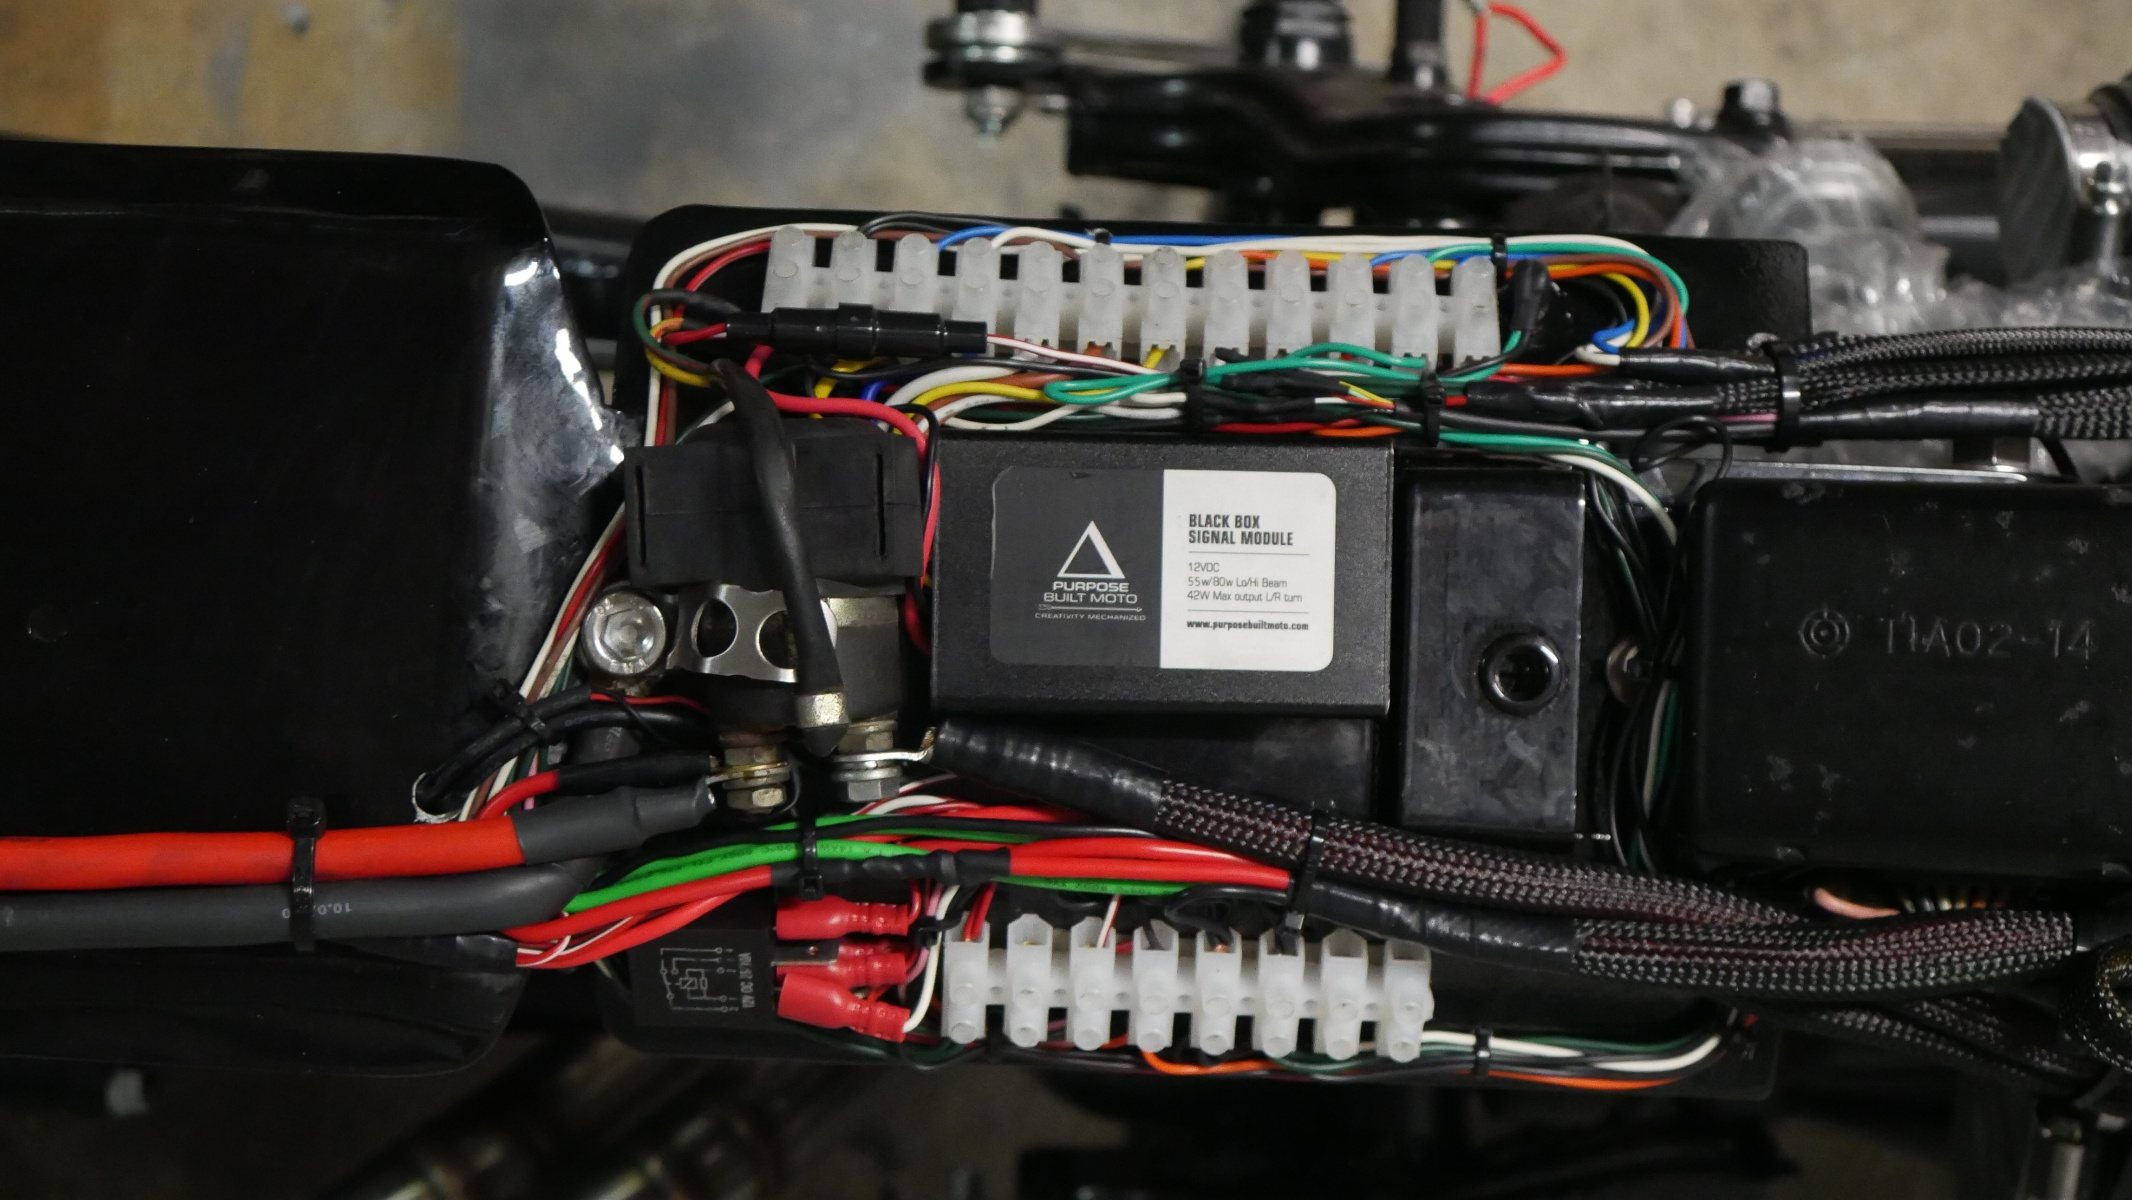 Top 5 Wiring Mistakes To Avoid When Your Custom Bike 2 Way Switch Blowing Fuse Push Button Flasher Module